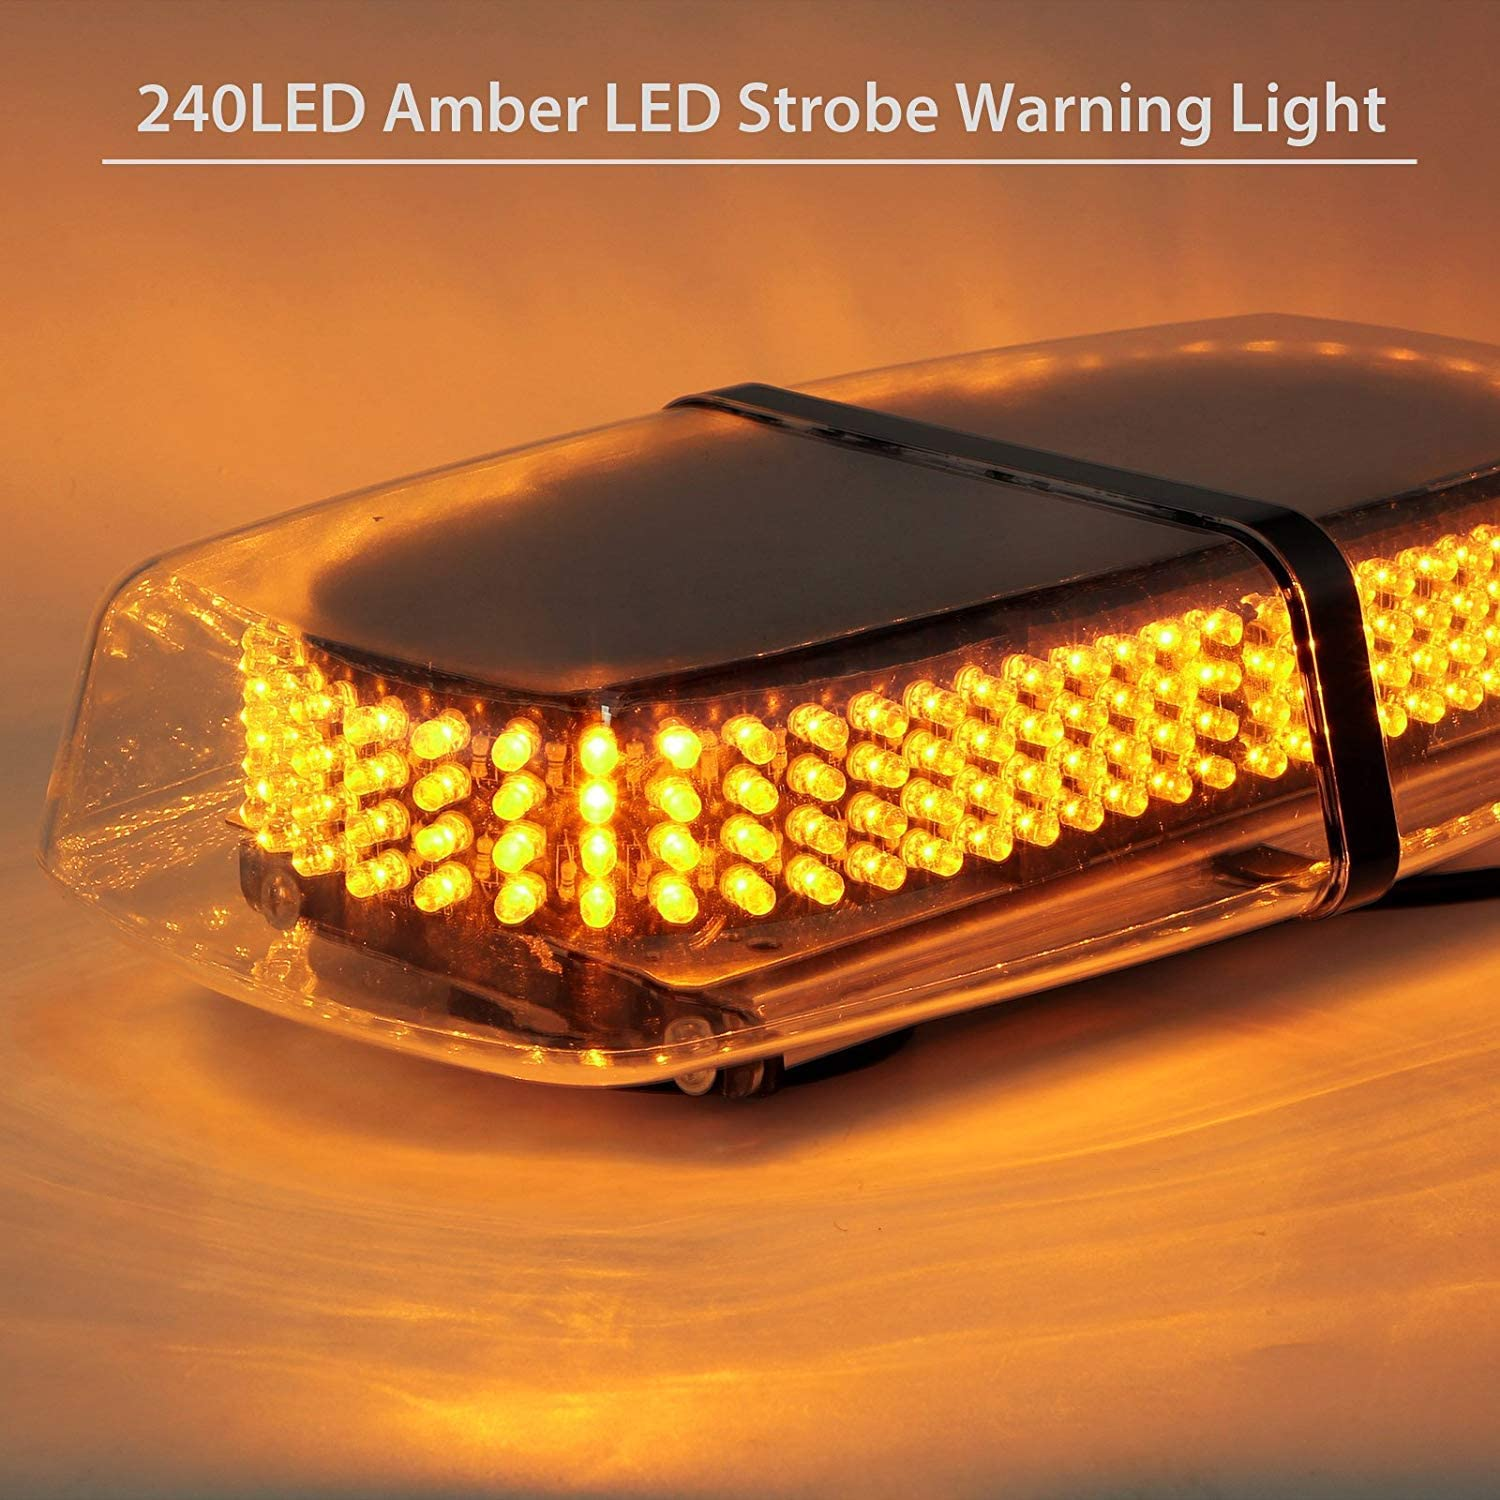 5559078294 Amber+White Didieyes 17in 44w LED Warning Strobe Light Short Row Caution Emergency Hazard Flashing Lamps with 10 Models Controller Magnetic Base for Truck Construction Snow Plow Vehicles DC12-24v